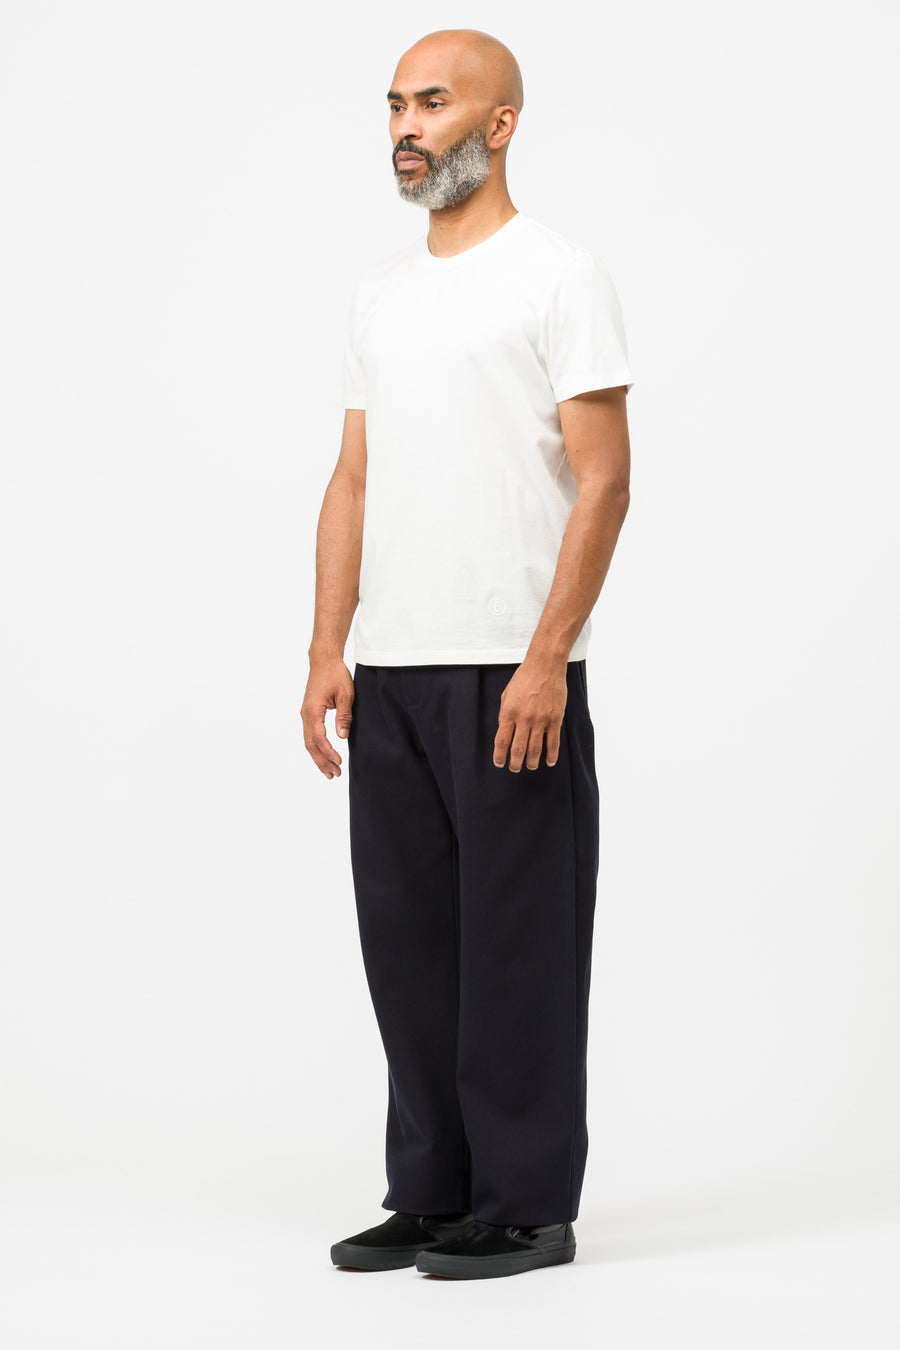 Acne Studios Parker Jumbo Trousers in Navy Blue - Notre